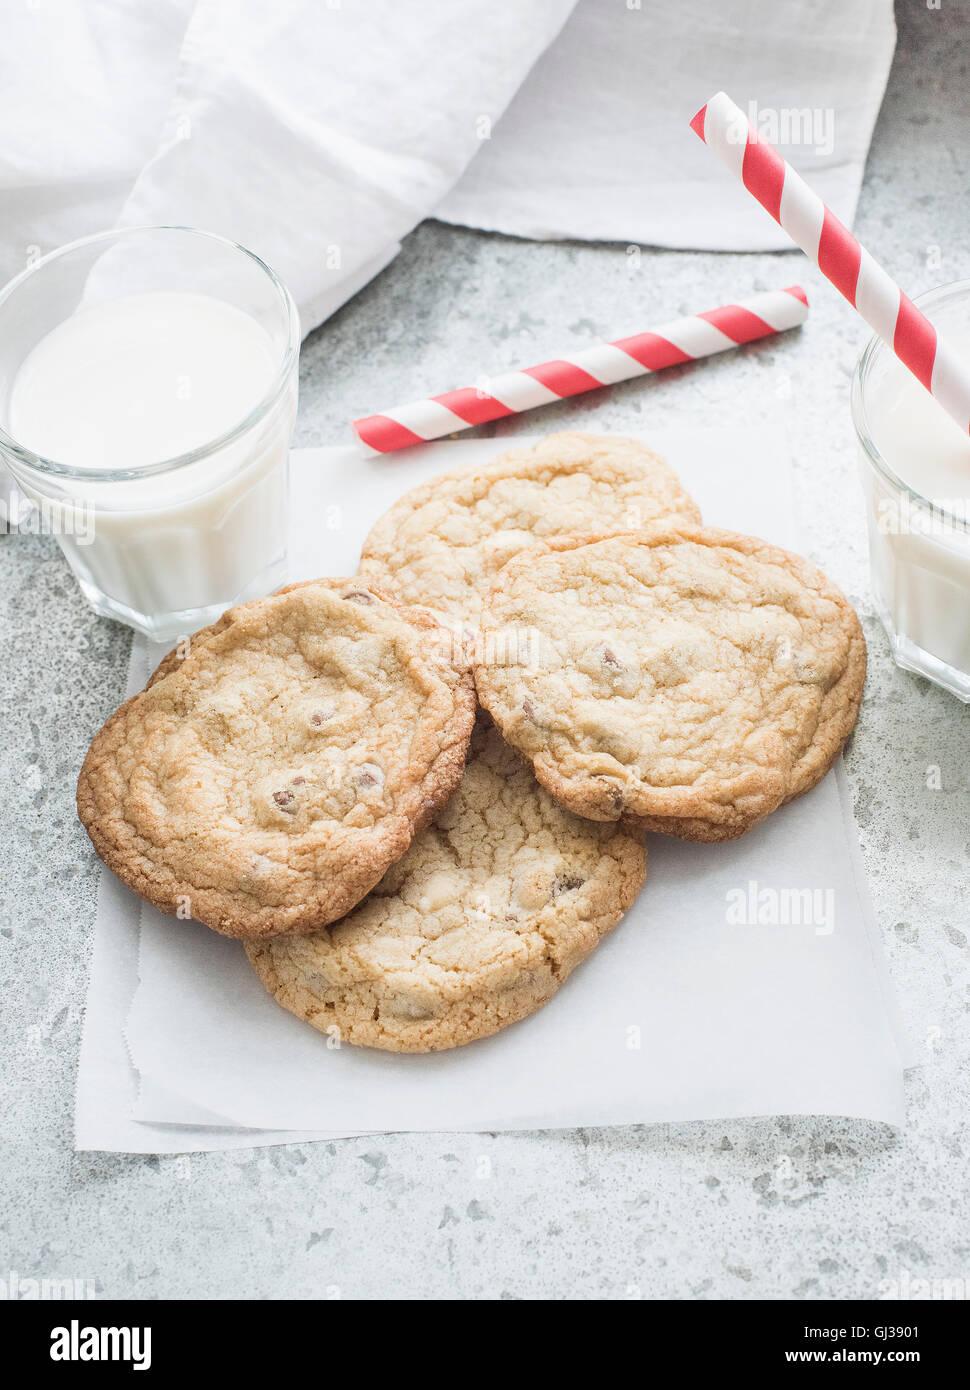 Chocolate chip cookies with milk - Stock Image